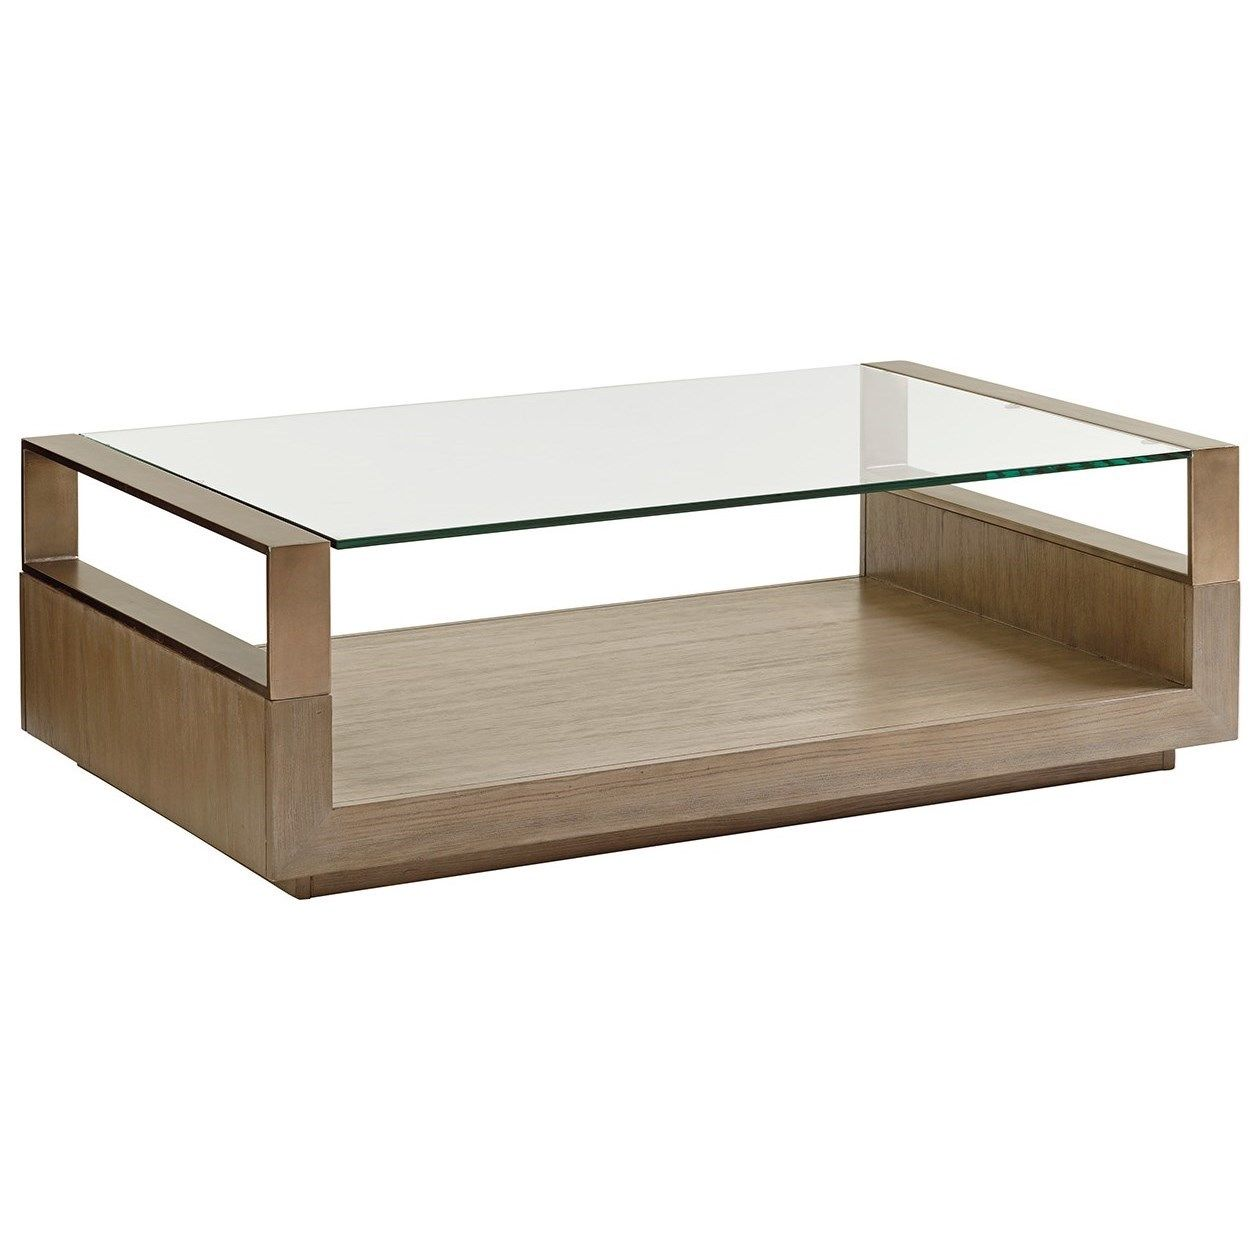 Shadow Play Center Stage Rectangular Cocktail Table by Lexington at Jacksonville Furniture Mart